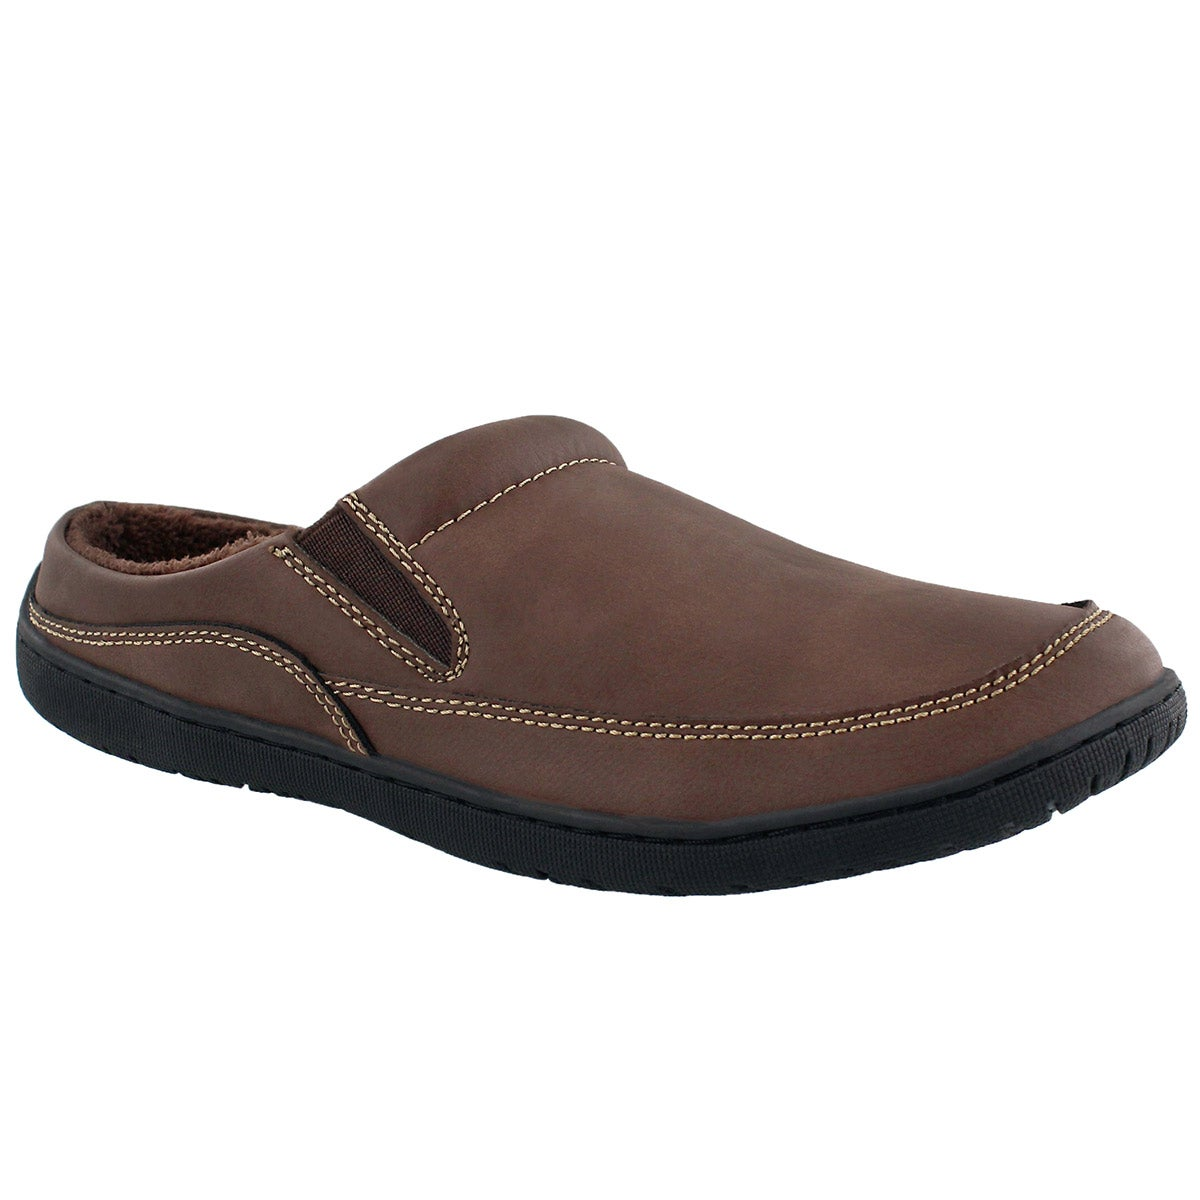 Mns Parkdale chocolate open back slipper